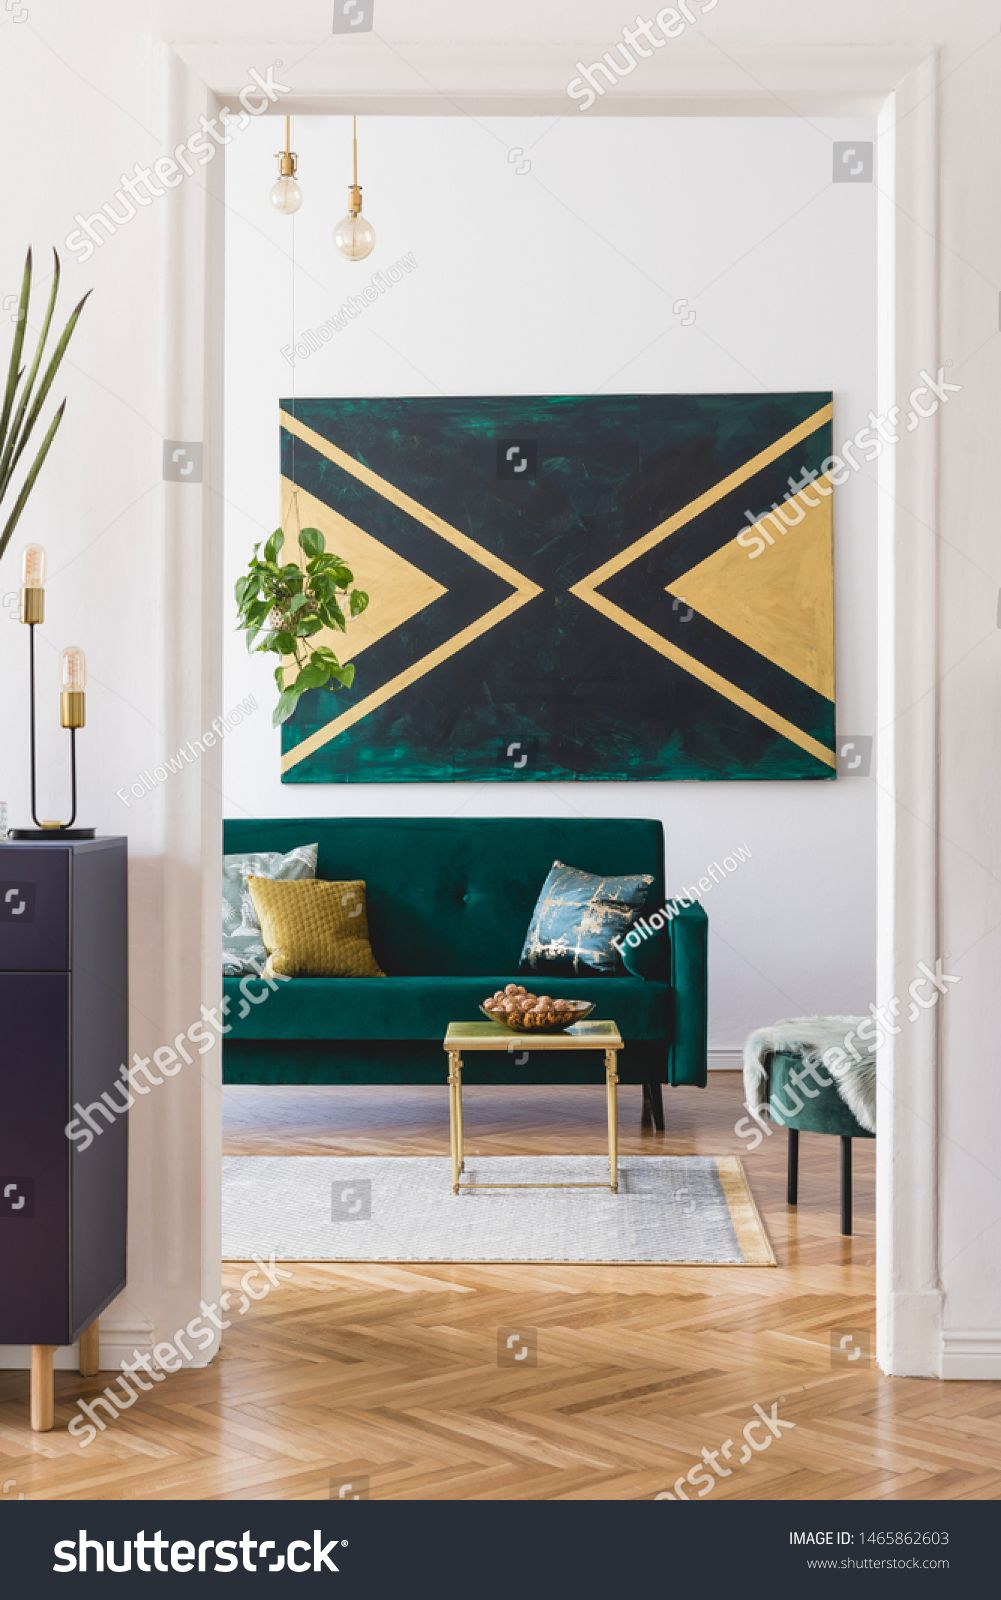 Luxury composition of home interior design with modern velvet sofa, pouf, shelf, pillows, coffee table, plants, elegant accessories and geometric paintings on the wall. Stylish home decor. Template. #Sponsored , #Ad, #sofa#velvet#pouf#pillows